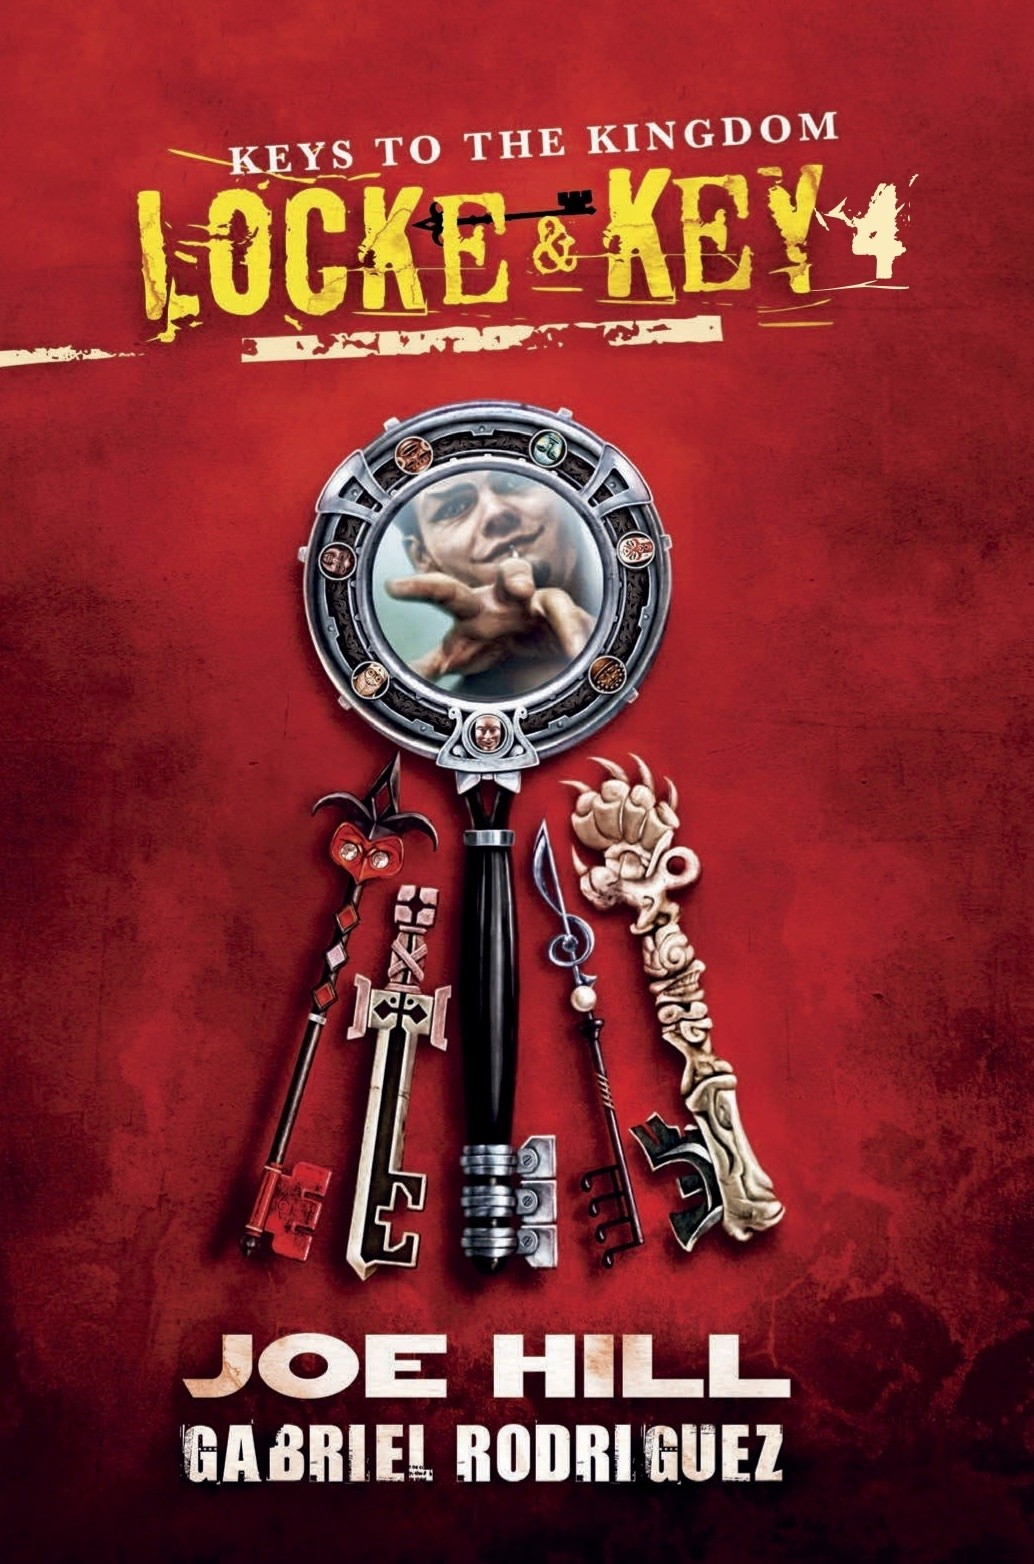 Keys to the Kingdom by Joe Hill